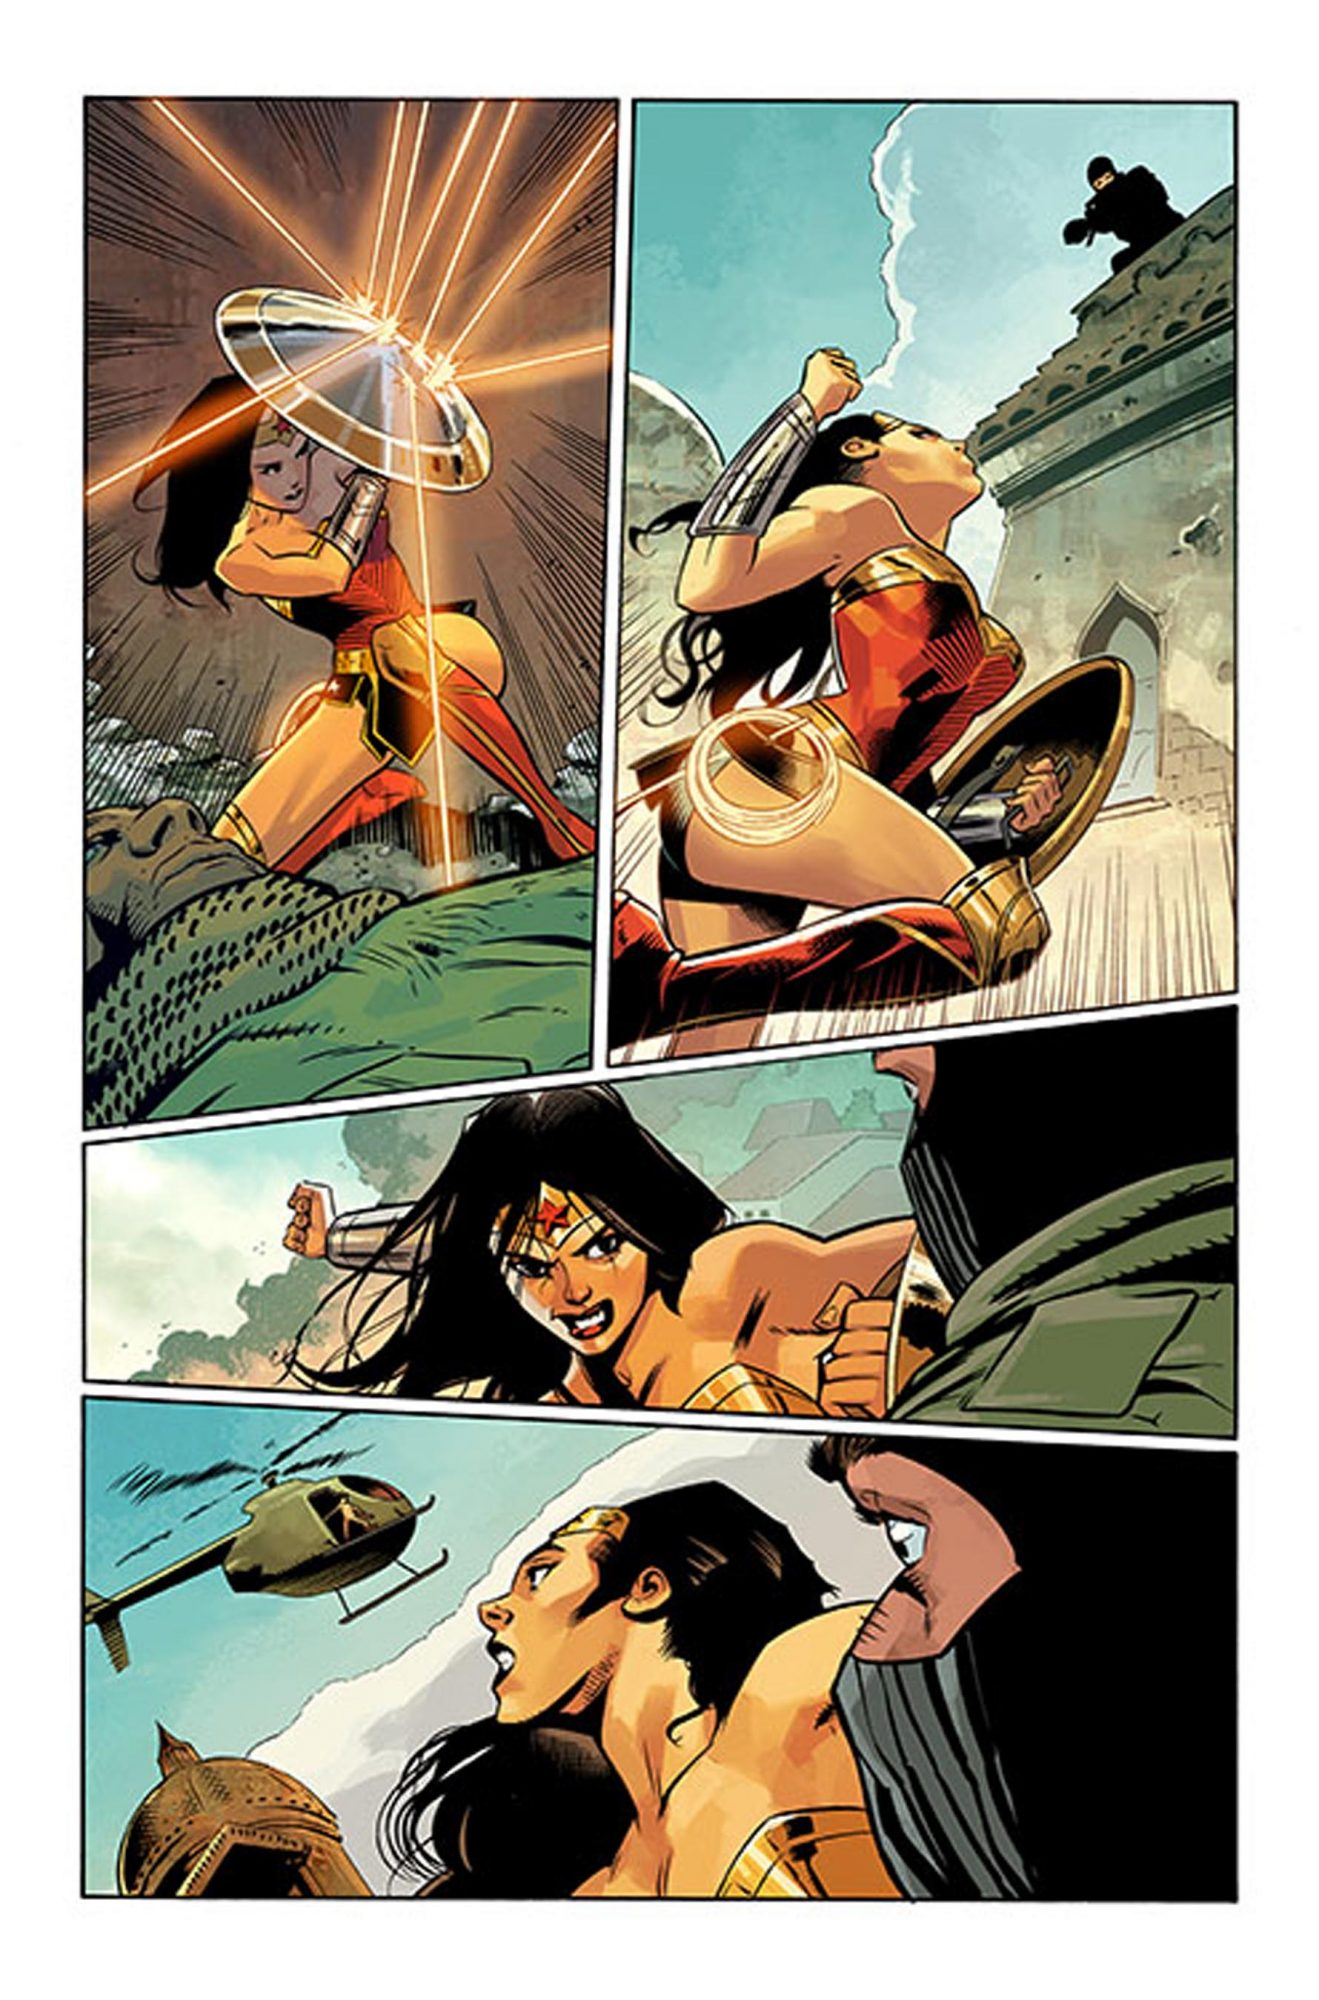 Wonder Woman 58 Comic by G. Willow WilsonCredit: DC Comics